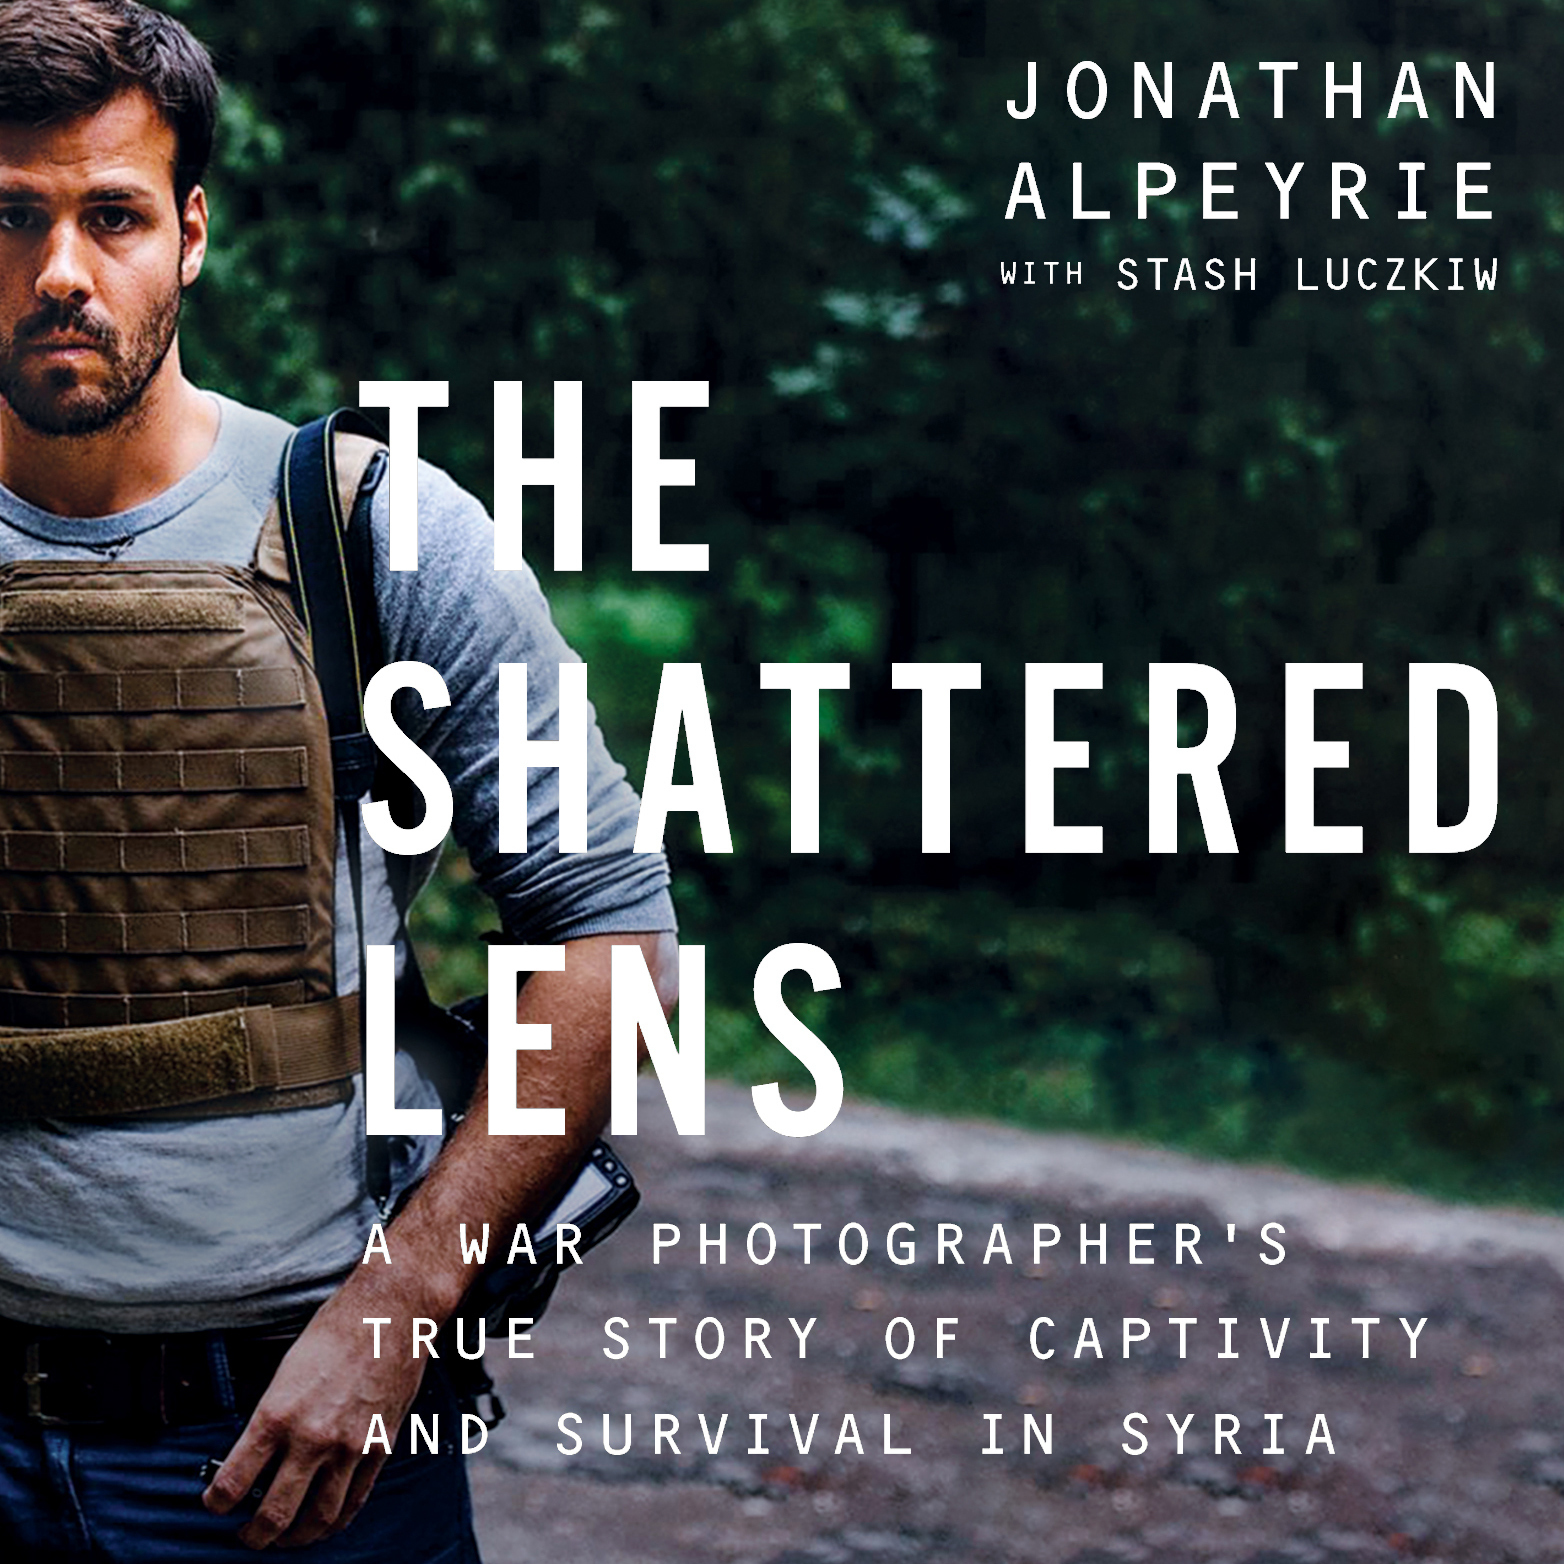 Printable The Shattered Lens: A War Photographer's True Story of Captivity and Survival in Syria Audiobook Cover Art